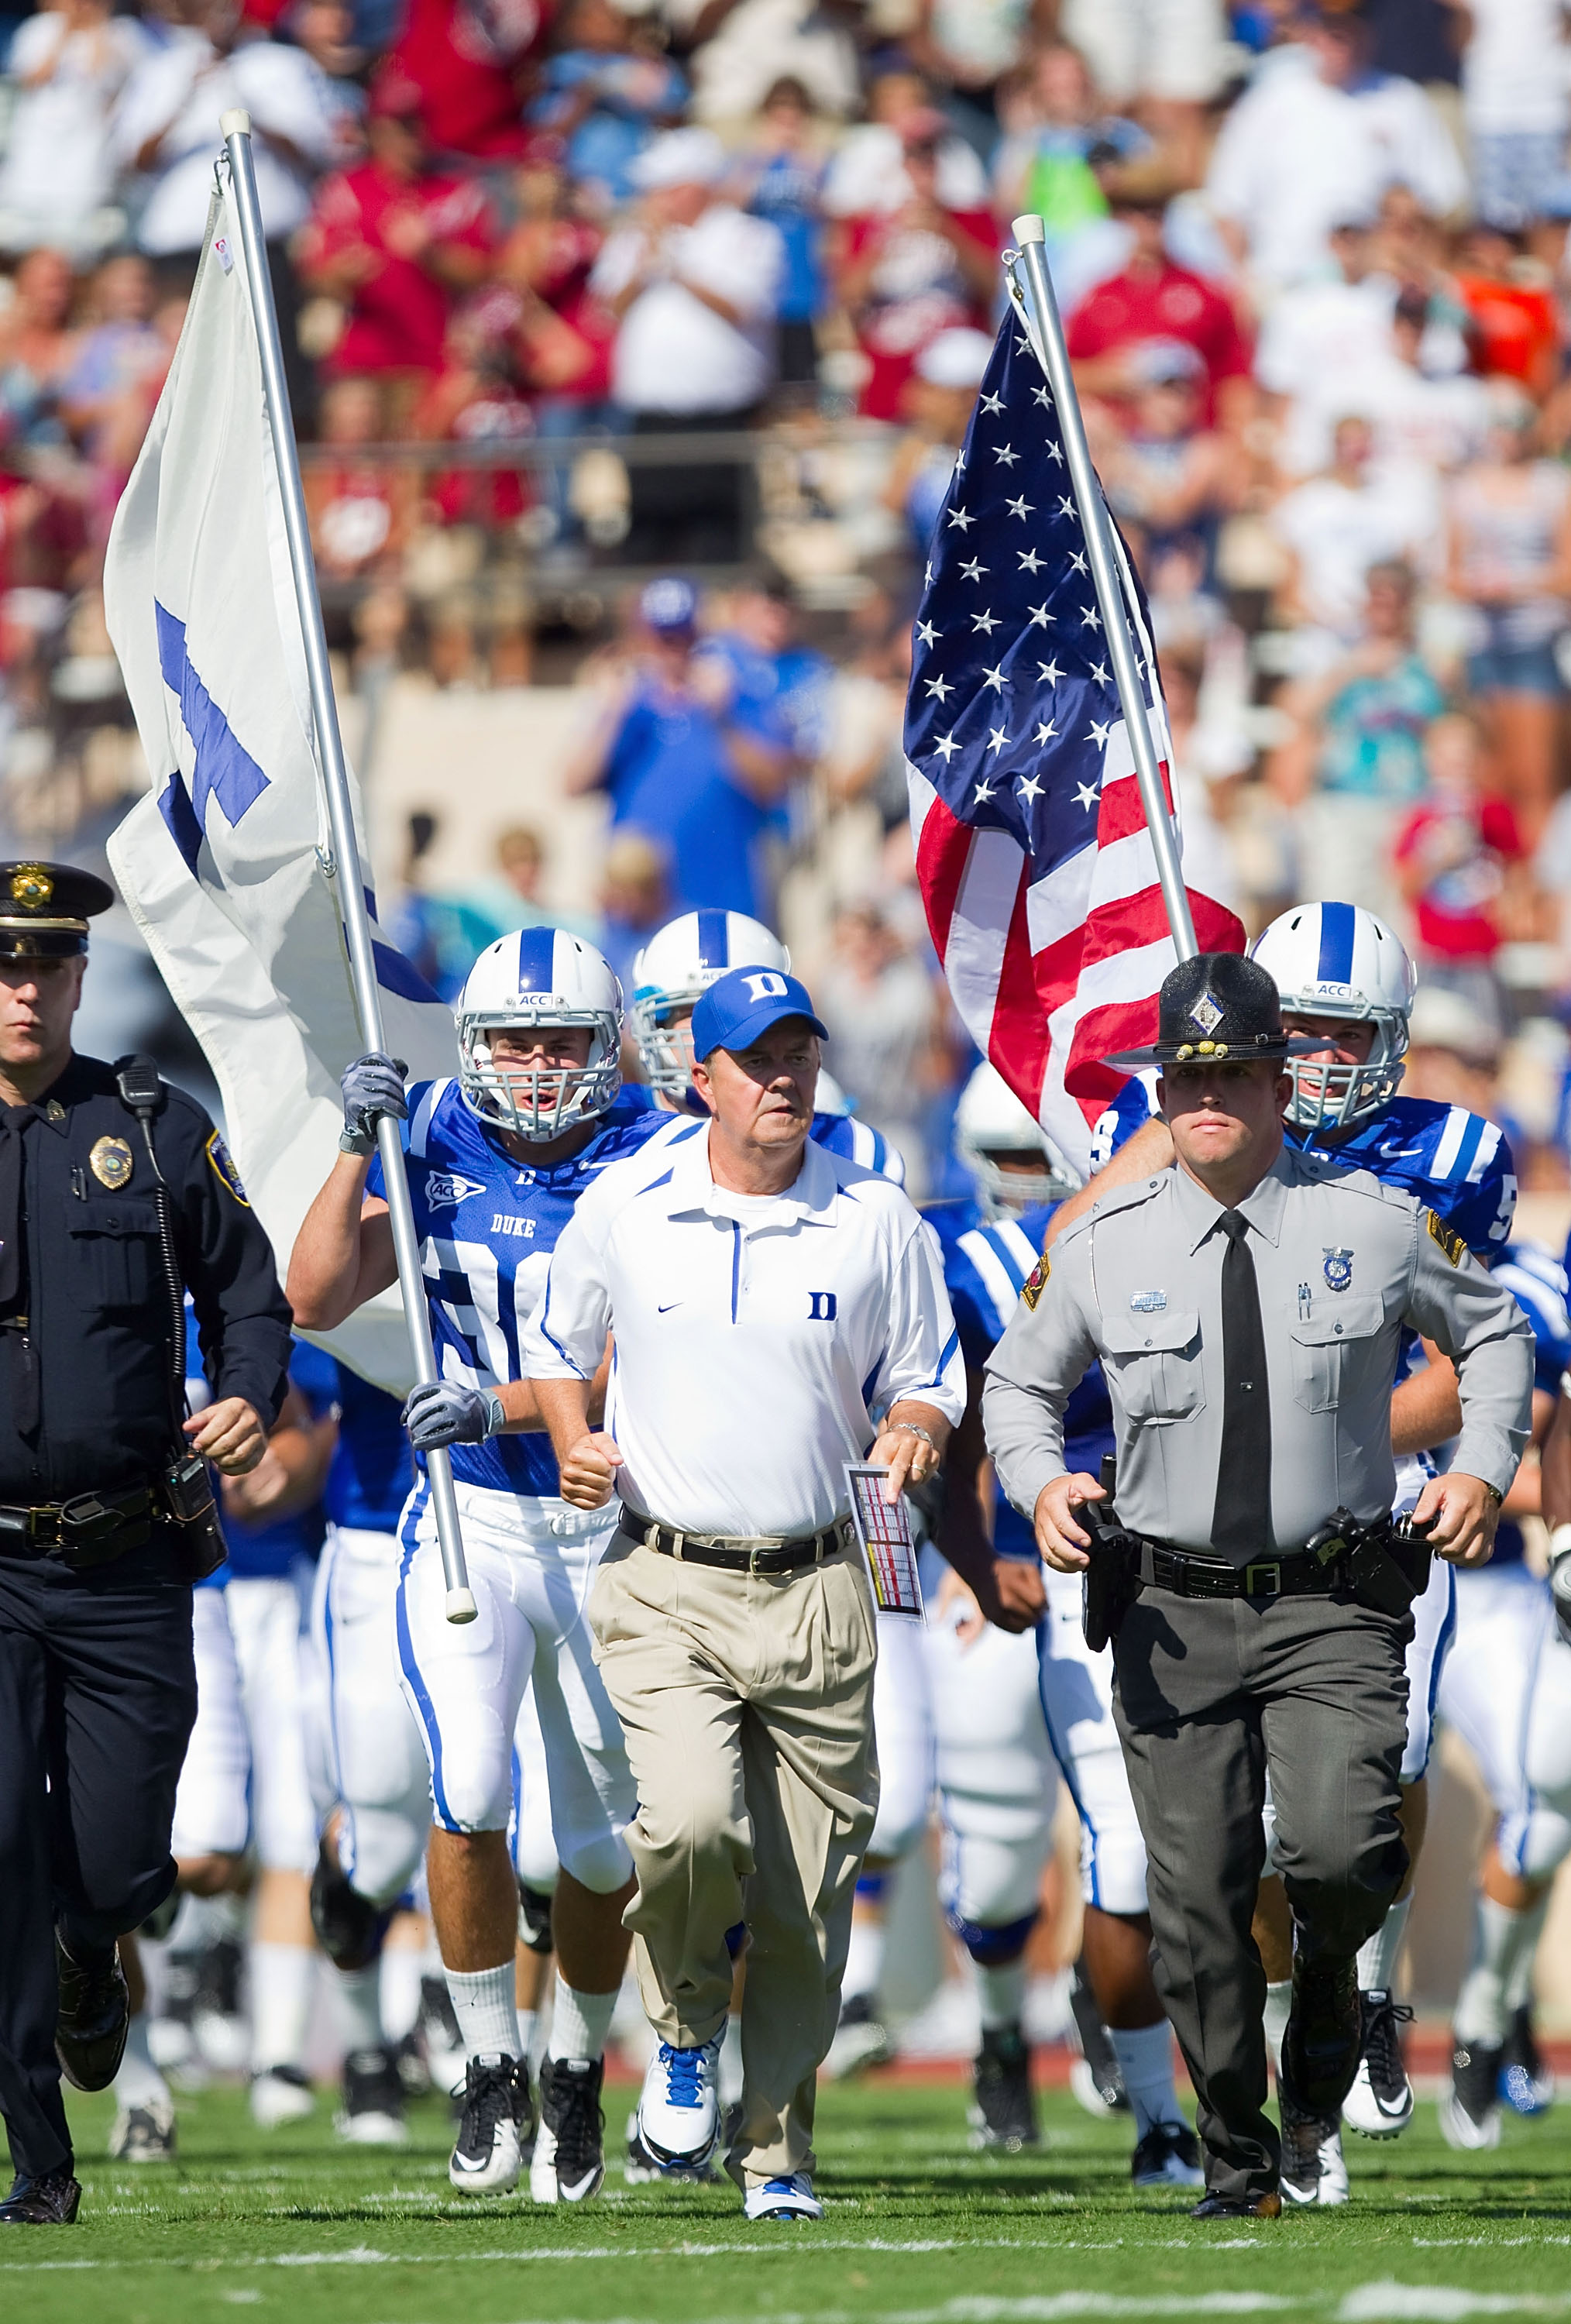 DURHAM, NC - SEPTEMBER 18: Duke Blue Devils head coach David Cutcliffe (C) leads his team on to the field to take on the Alabama Crimson Tide at Wallace Wade Stadium on September 18, 2010 in Durham, North Carolina.  The Crimson Tide defeated the Blue Devi